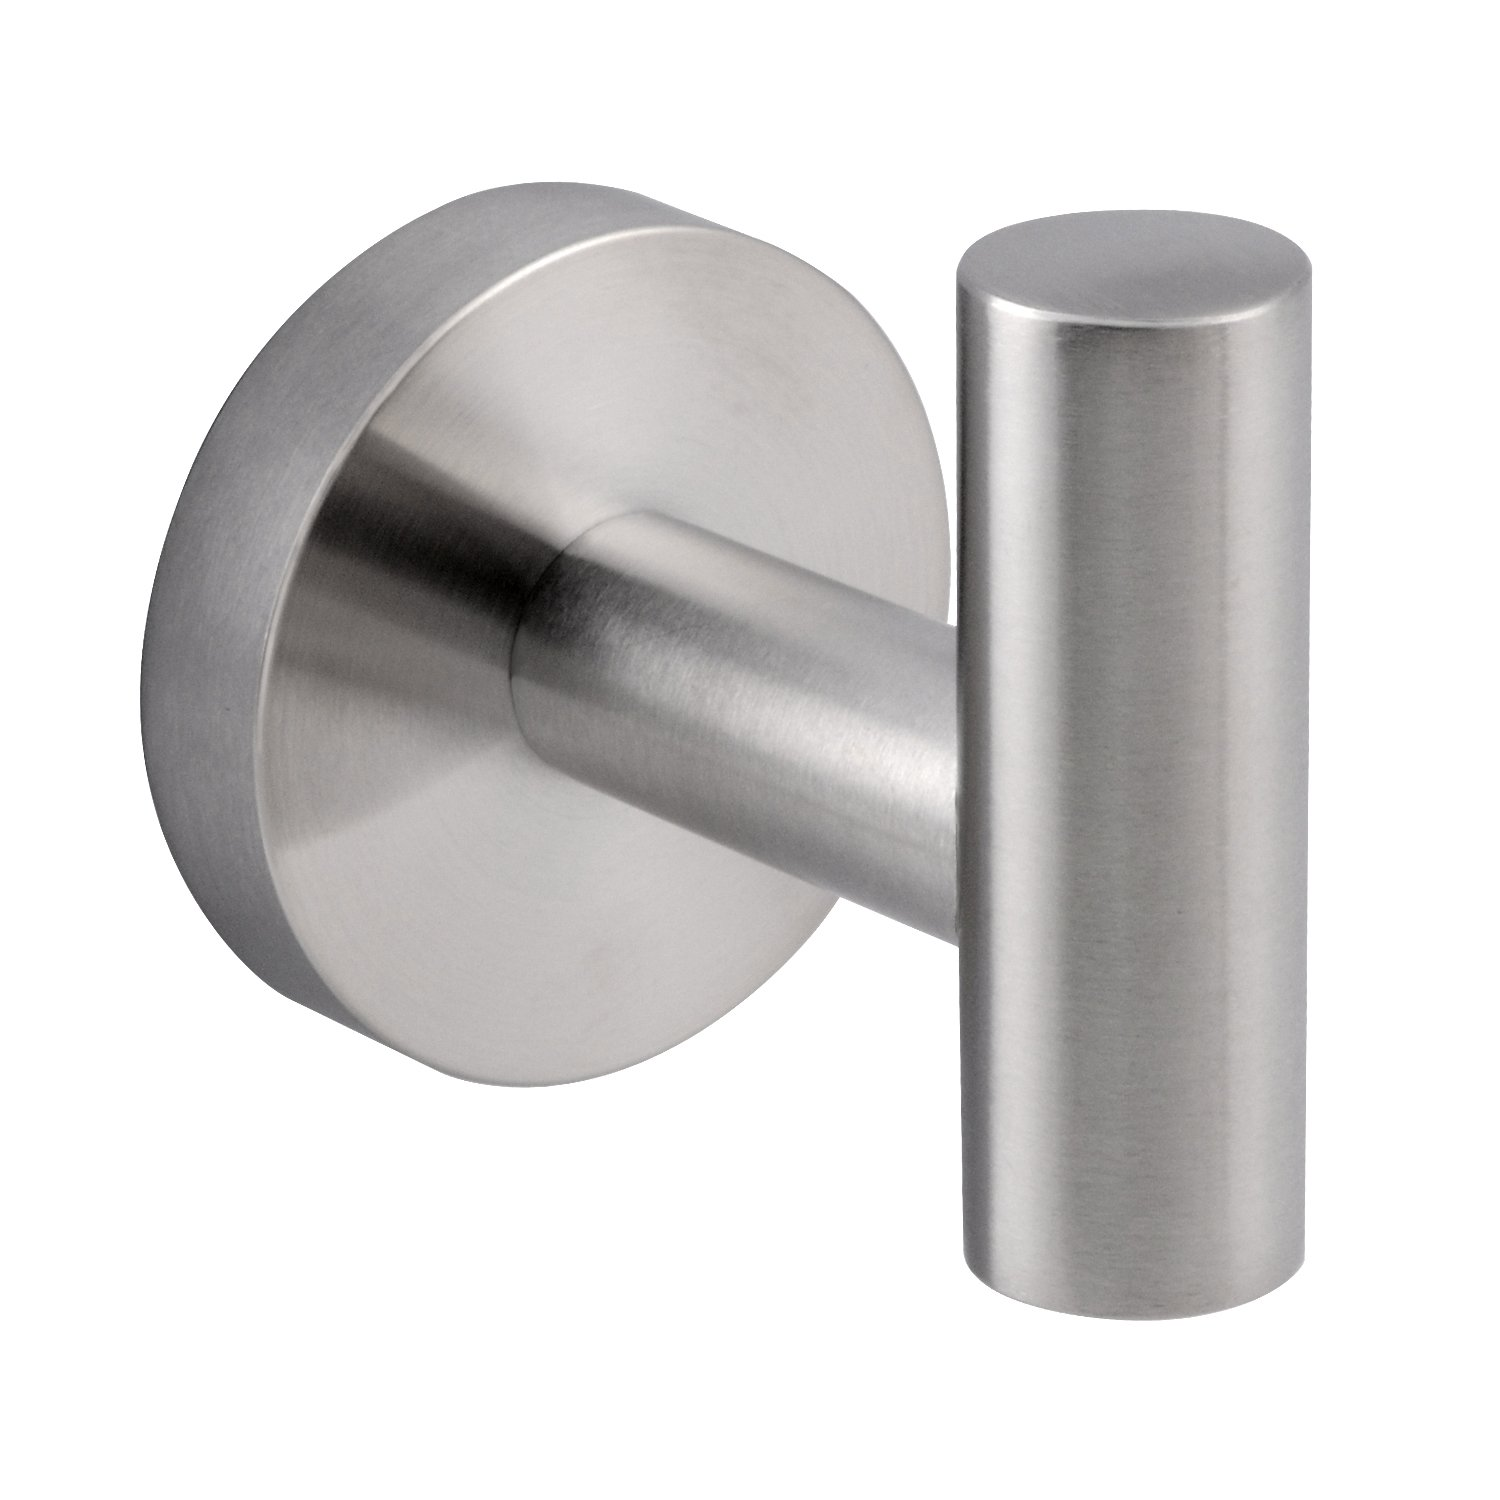 Modern stainless steel single prong round robe hook